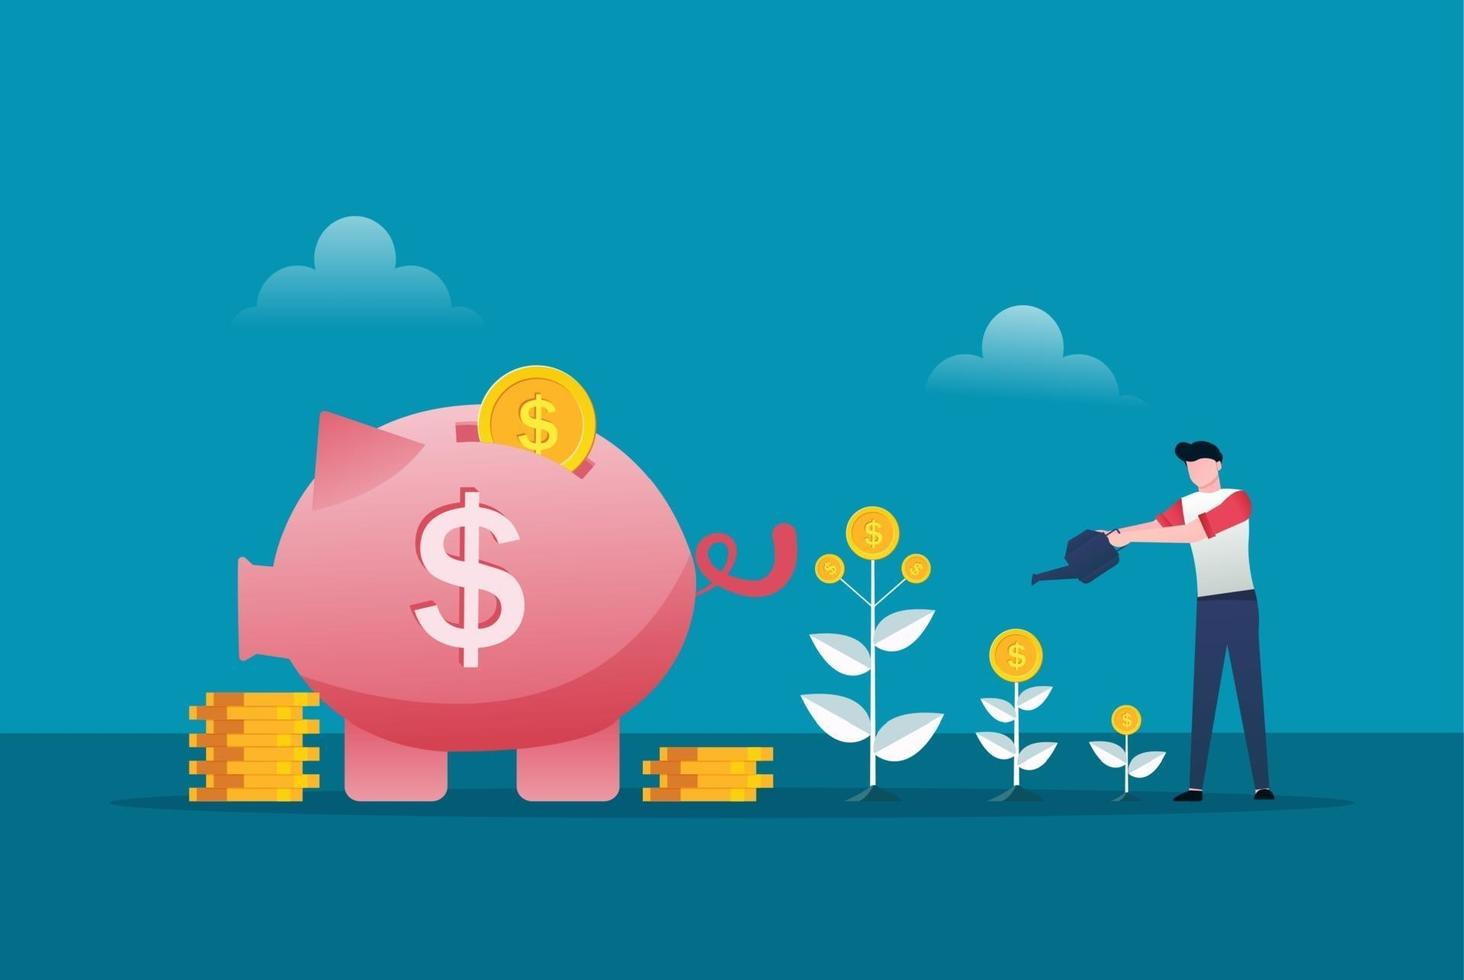 businessman is watering money tree grow. Financial profit growth and smart investment vector illustration. return on investment with piggy bank symbol